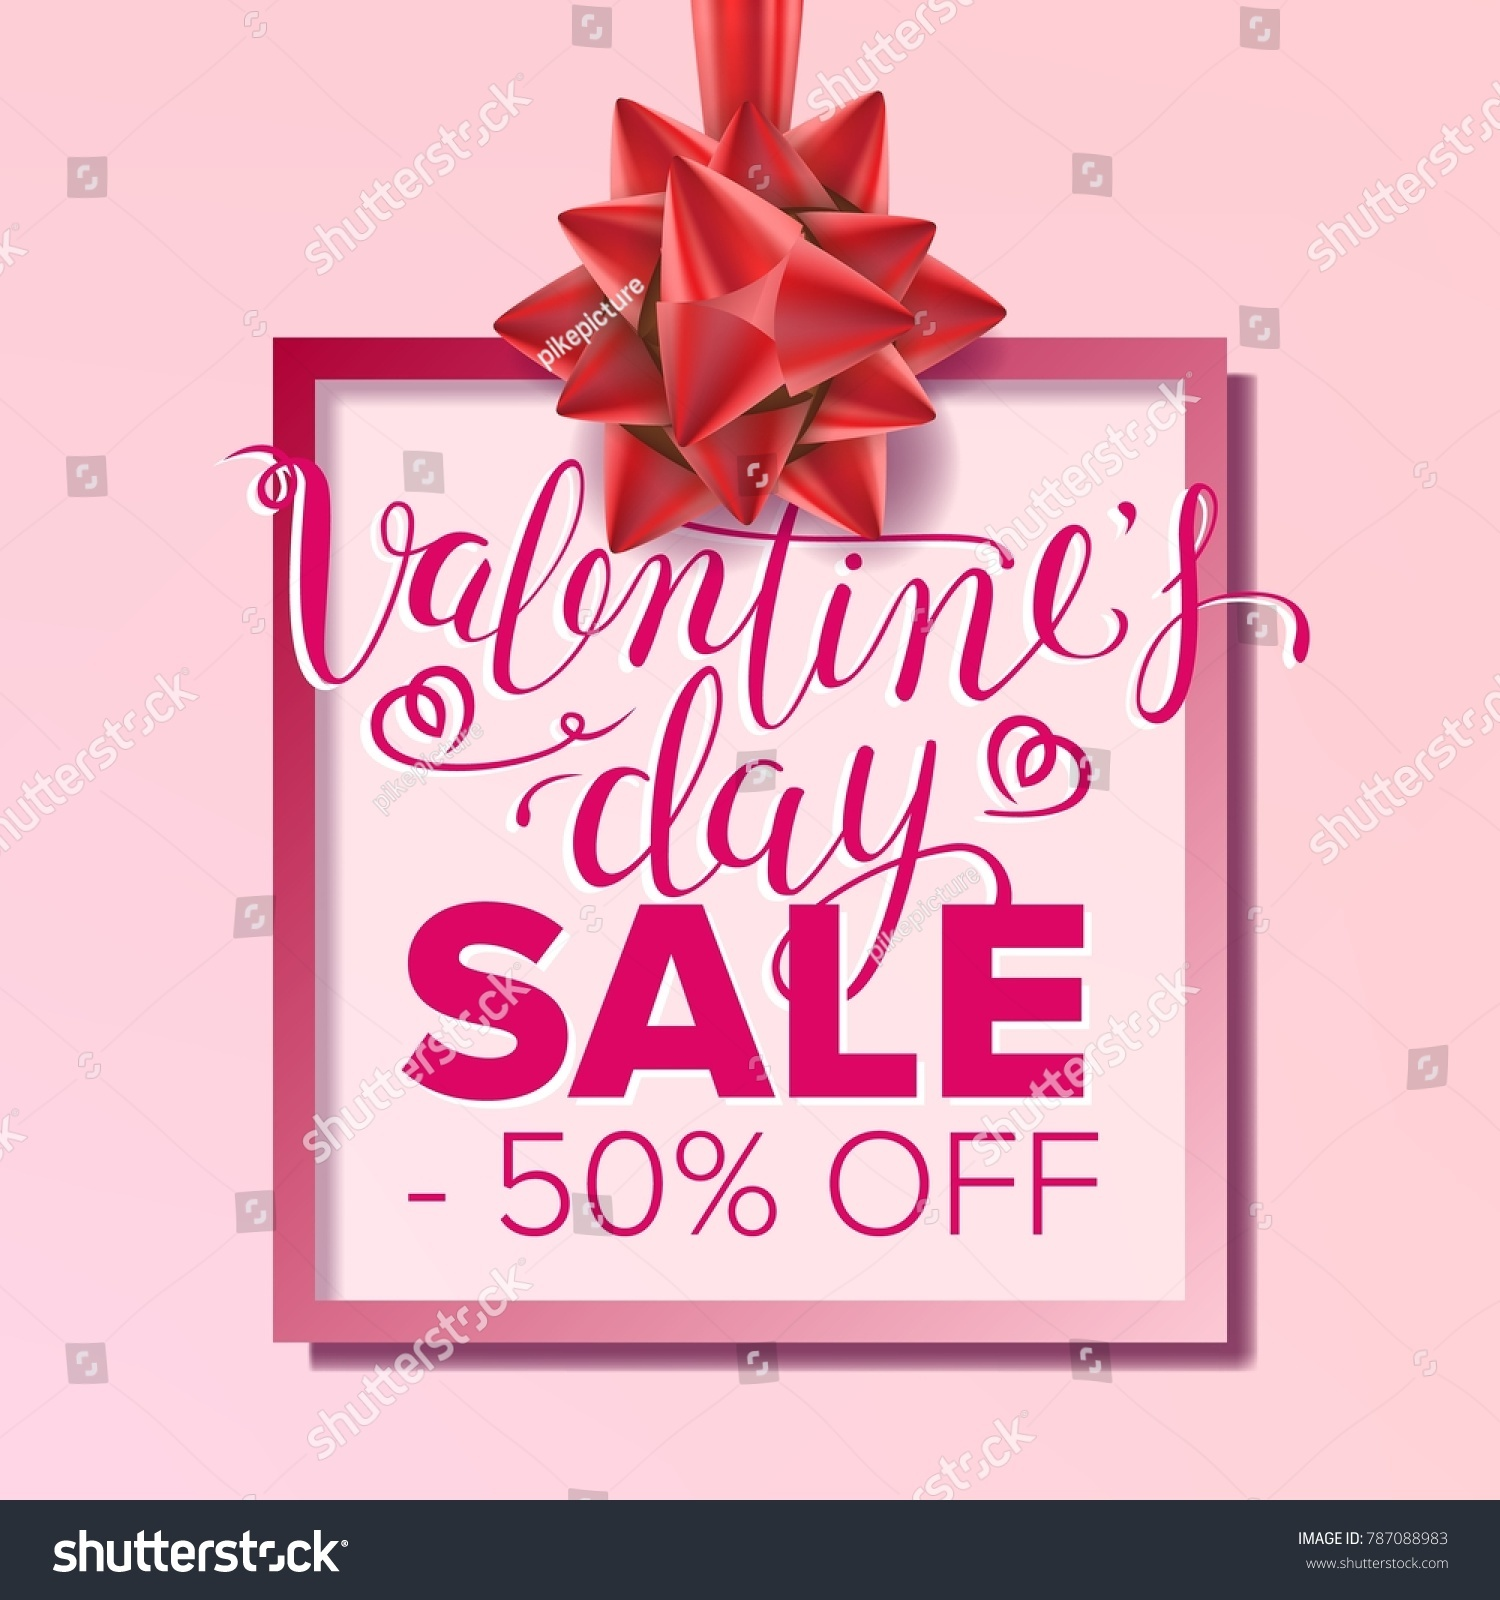 Valentine s day sale banner business stock illustration 787088983 valentine s day sale banner business advertising illustration february 14 sale poster template kristyandbryce Image collections